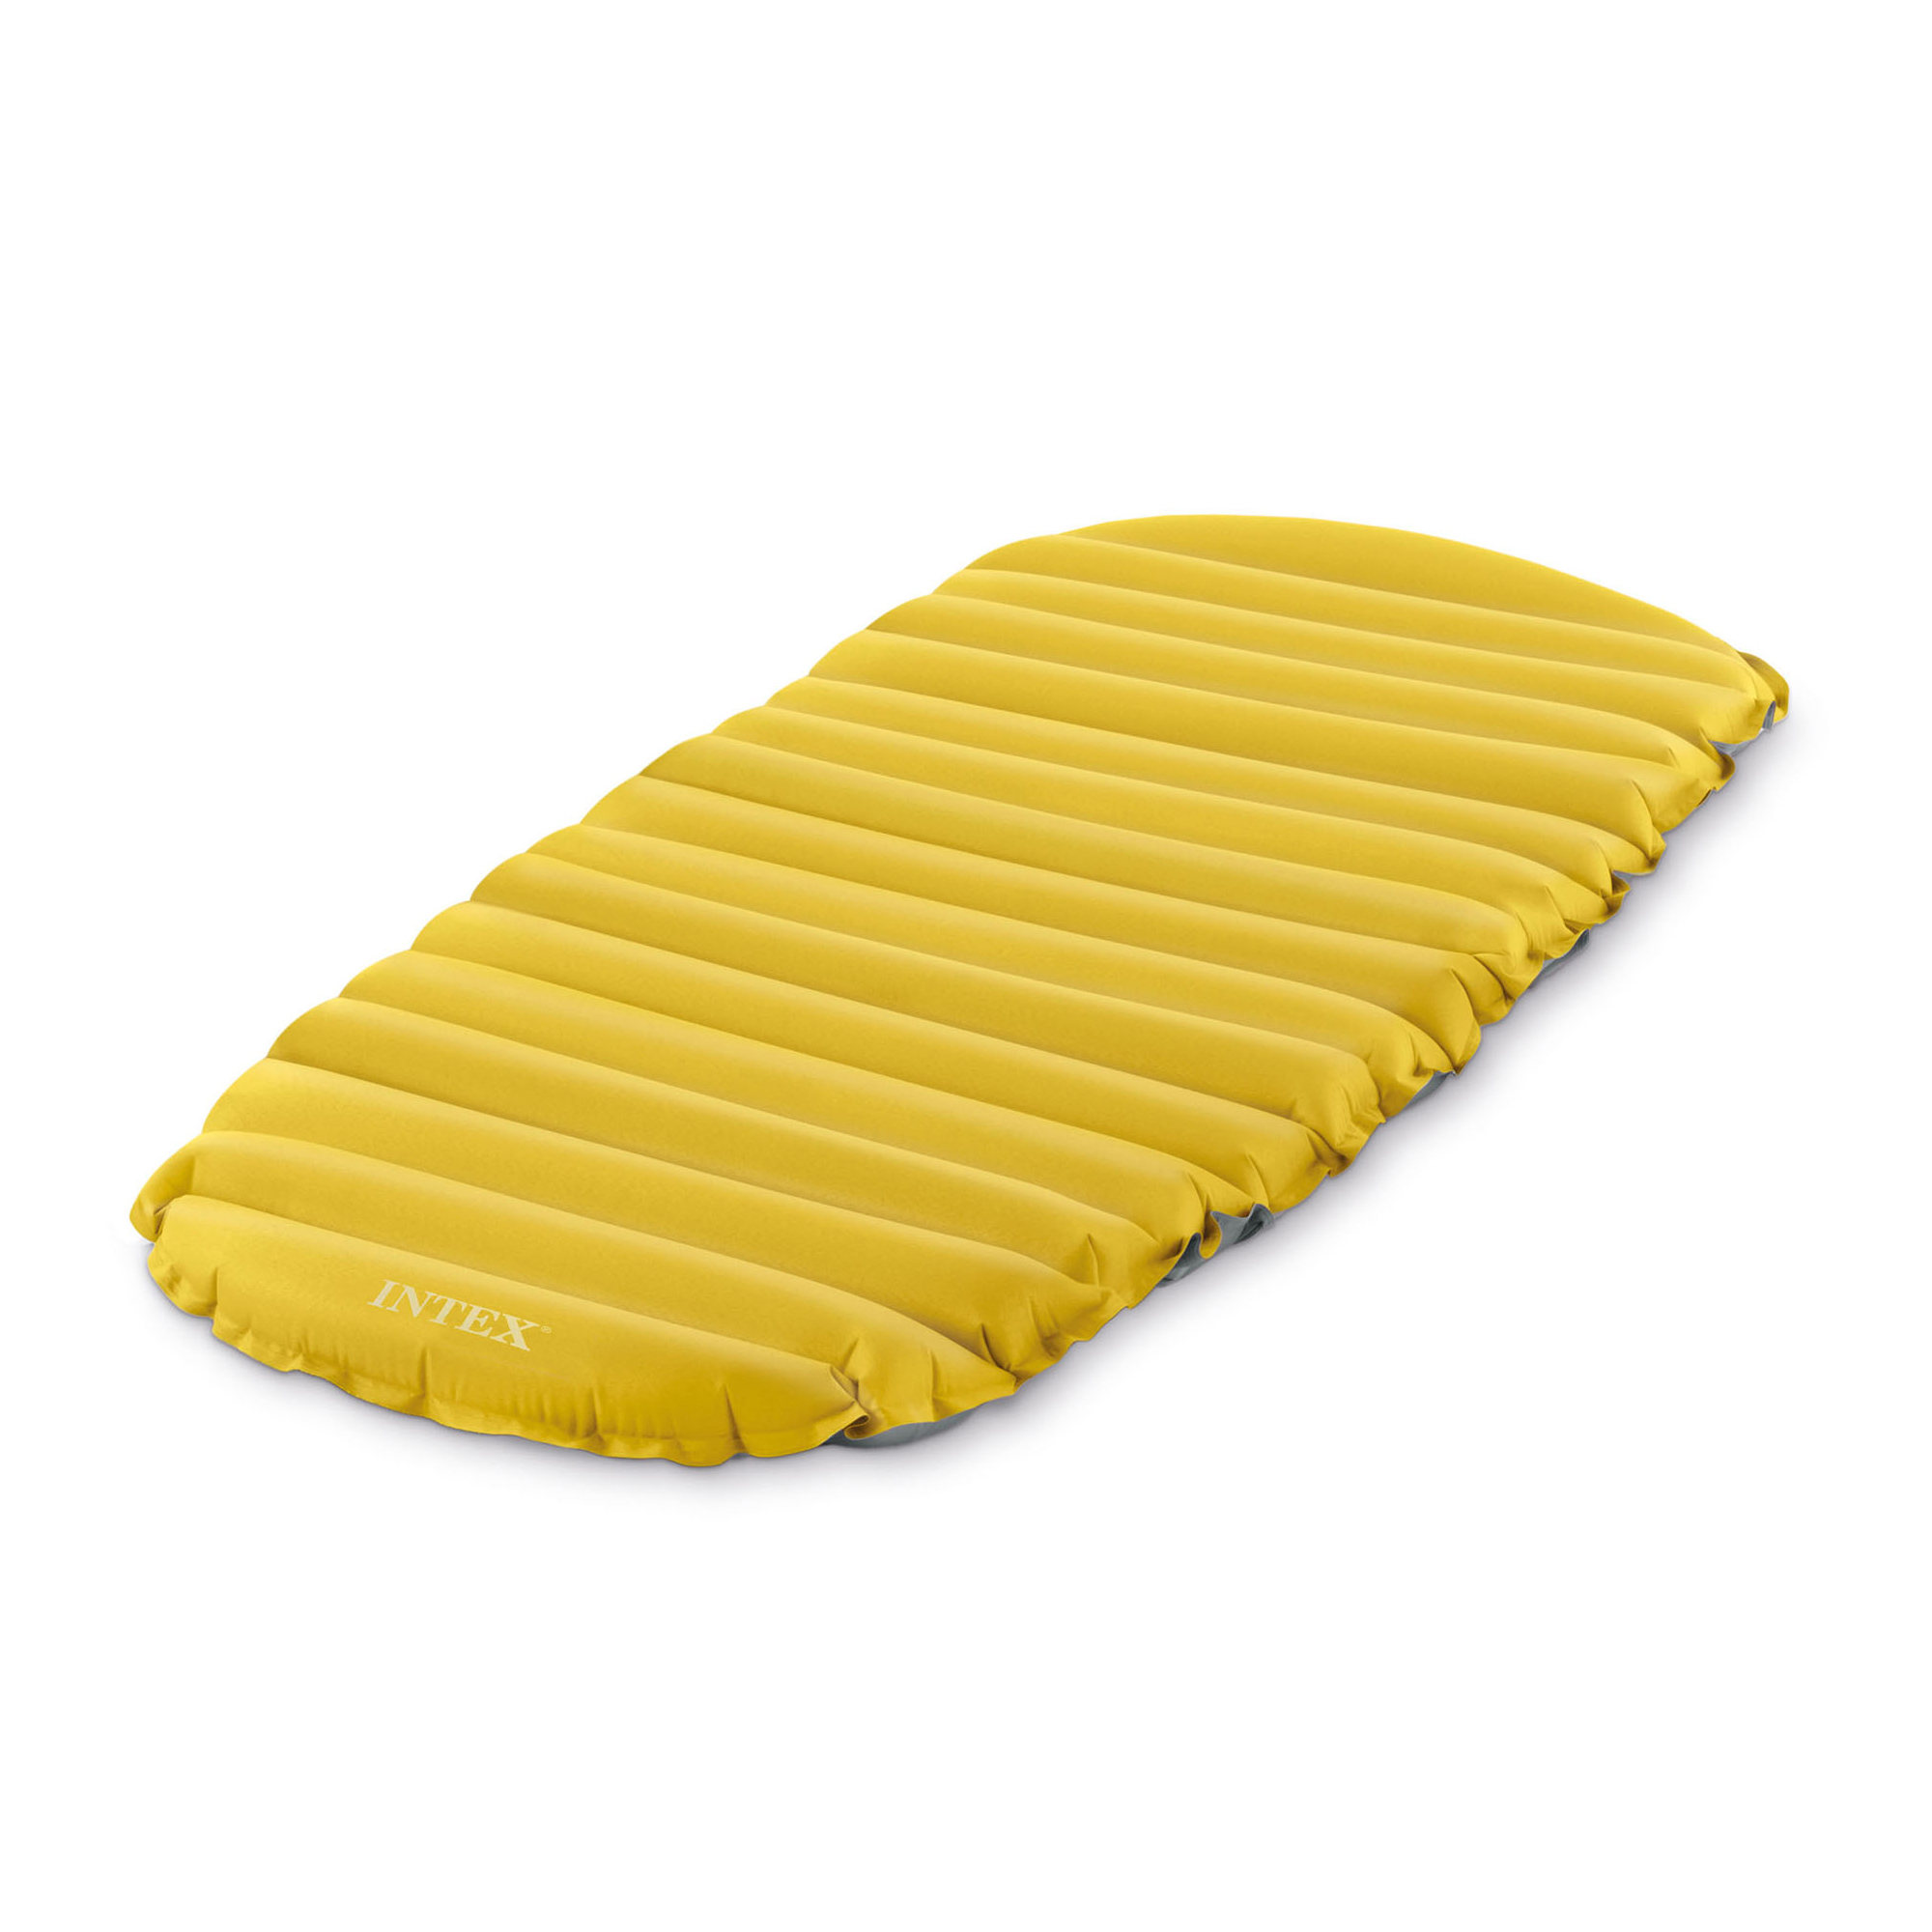 Intex Cot Size Camping Mat by Intex